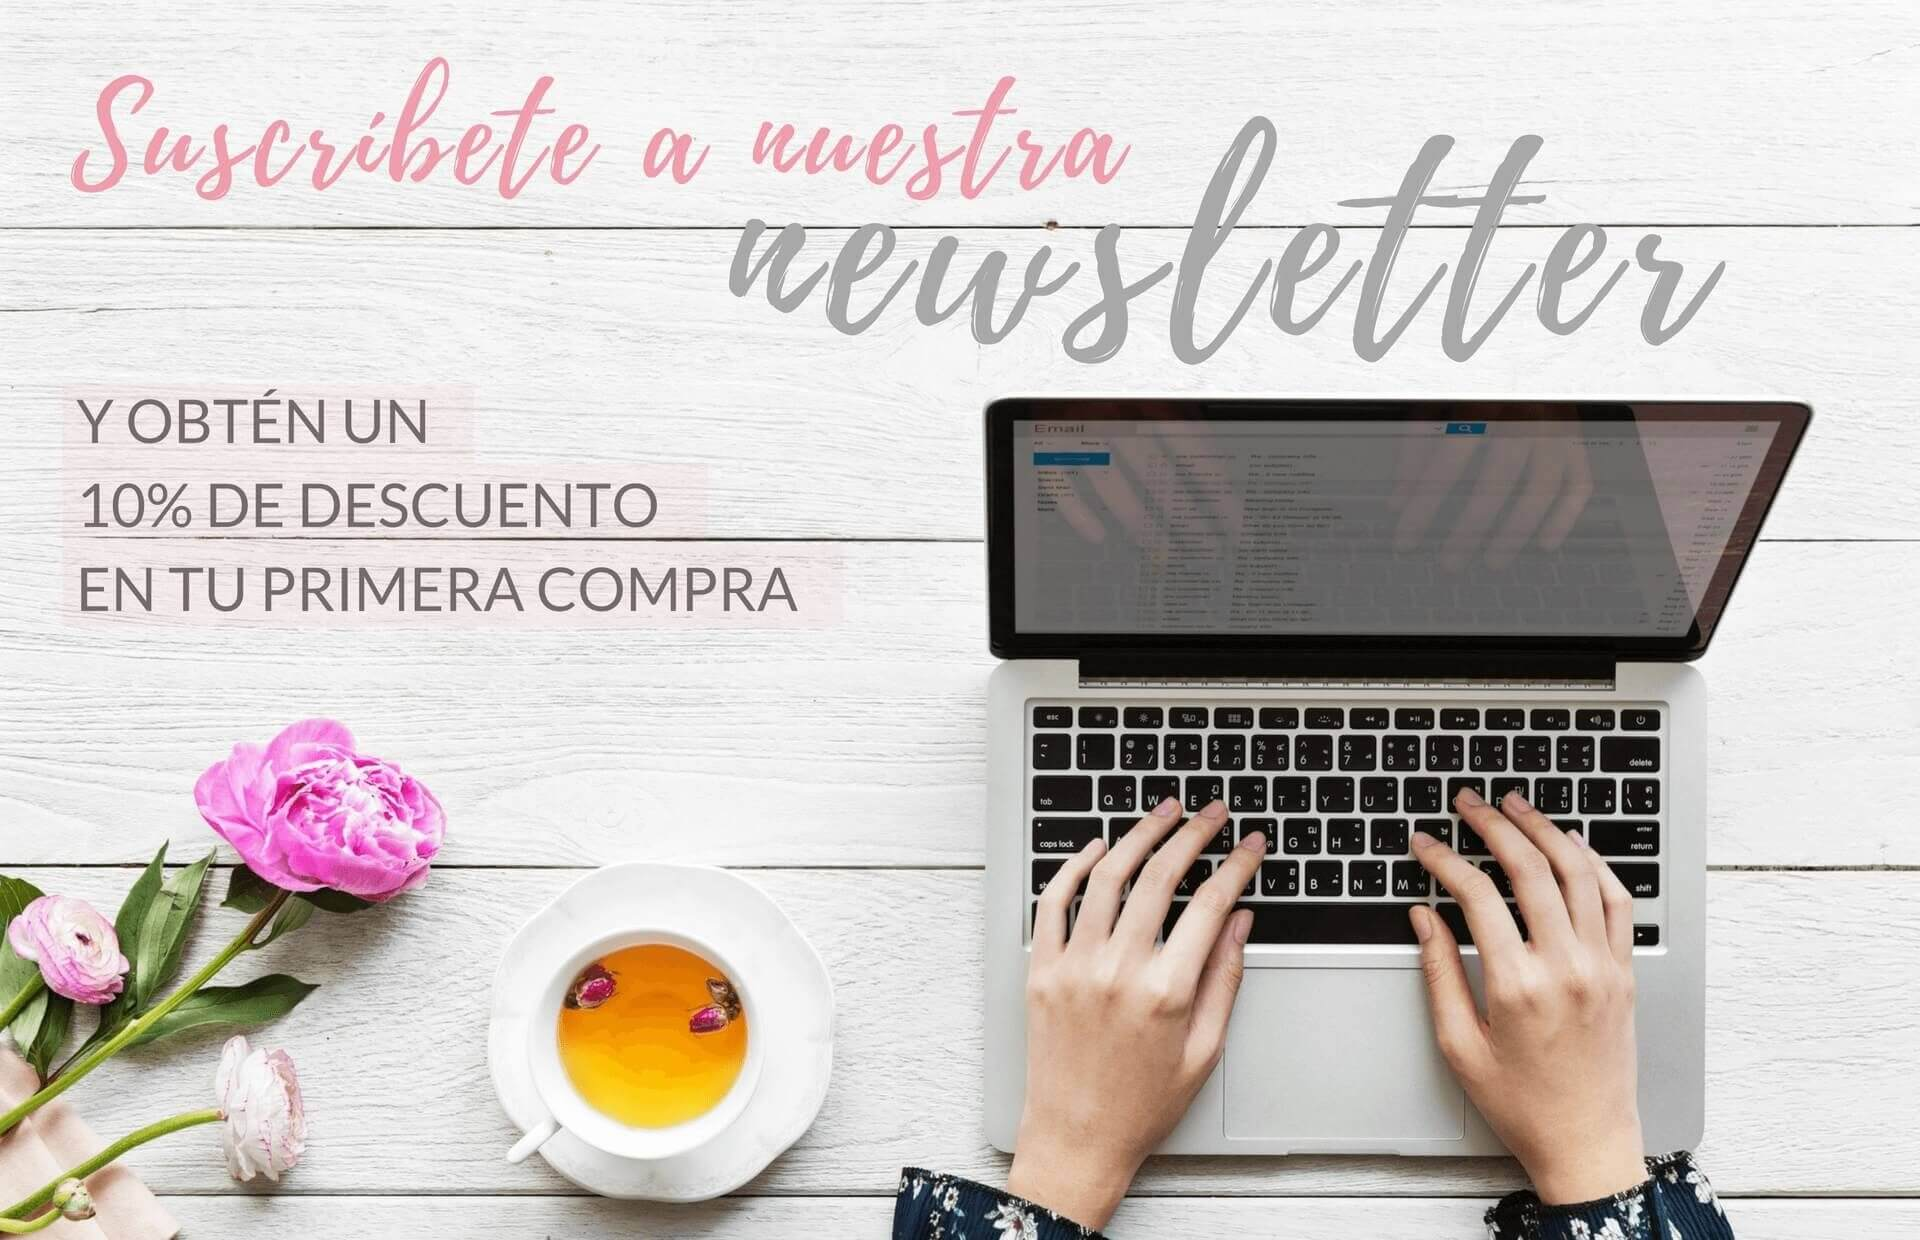 Home_descuento-newsletter-movil_-1920x1240